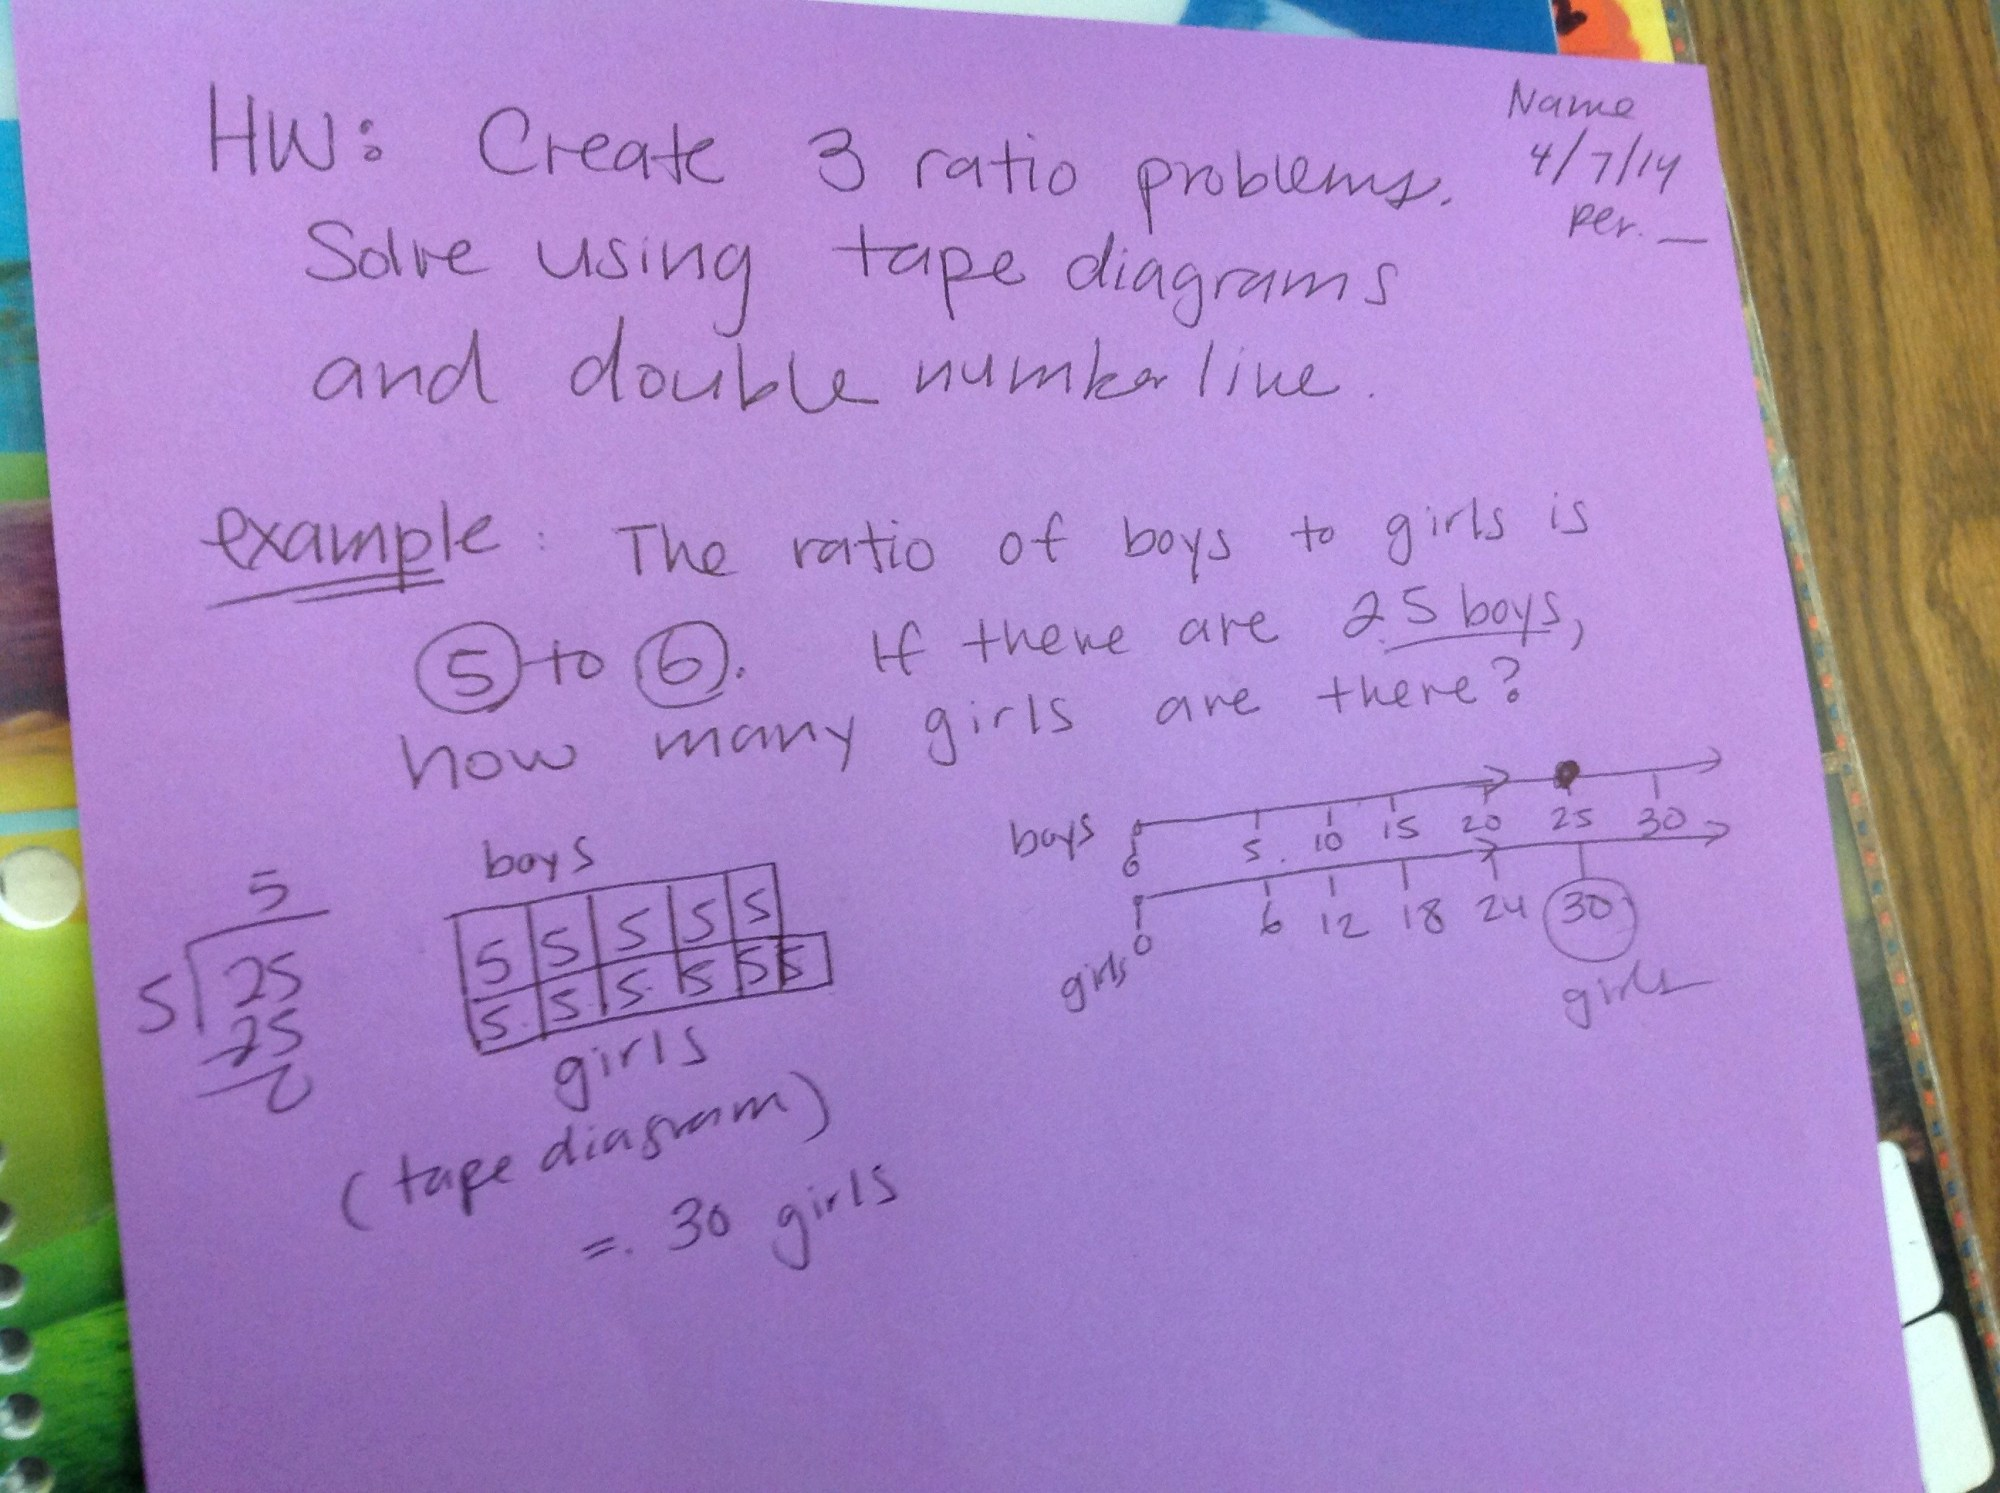 hight resolution of hw create 3 ratio problems using tape diagrams and double number lines